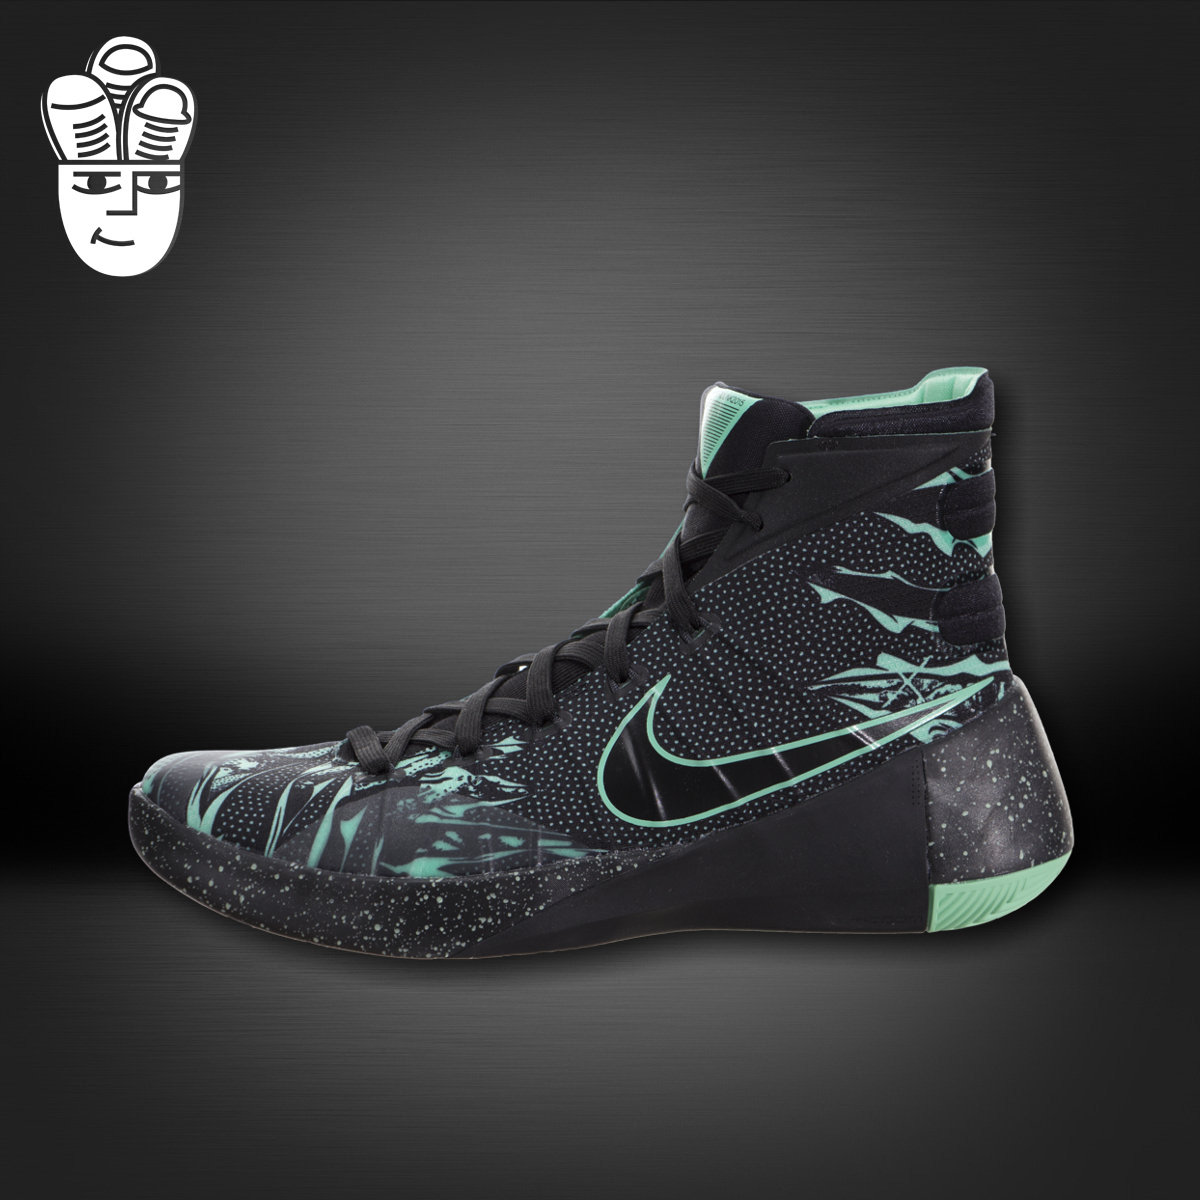 finest selection a4ddd 7517b Get Quotations · Nike hyperdunk 2015 prm nike men s actual basketball shoes  sports shoes